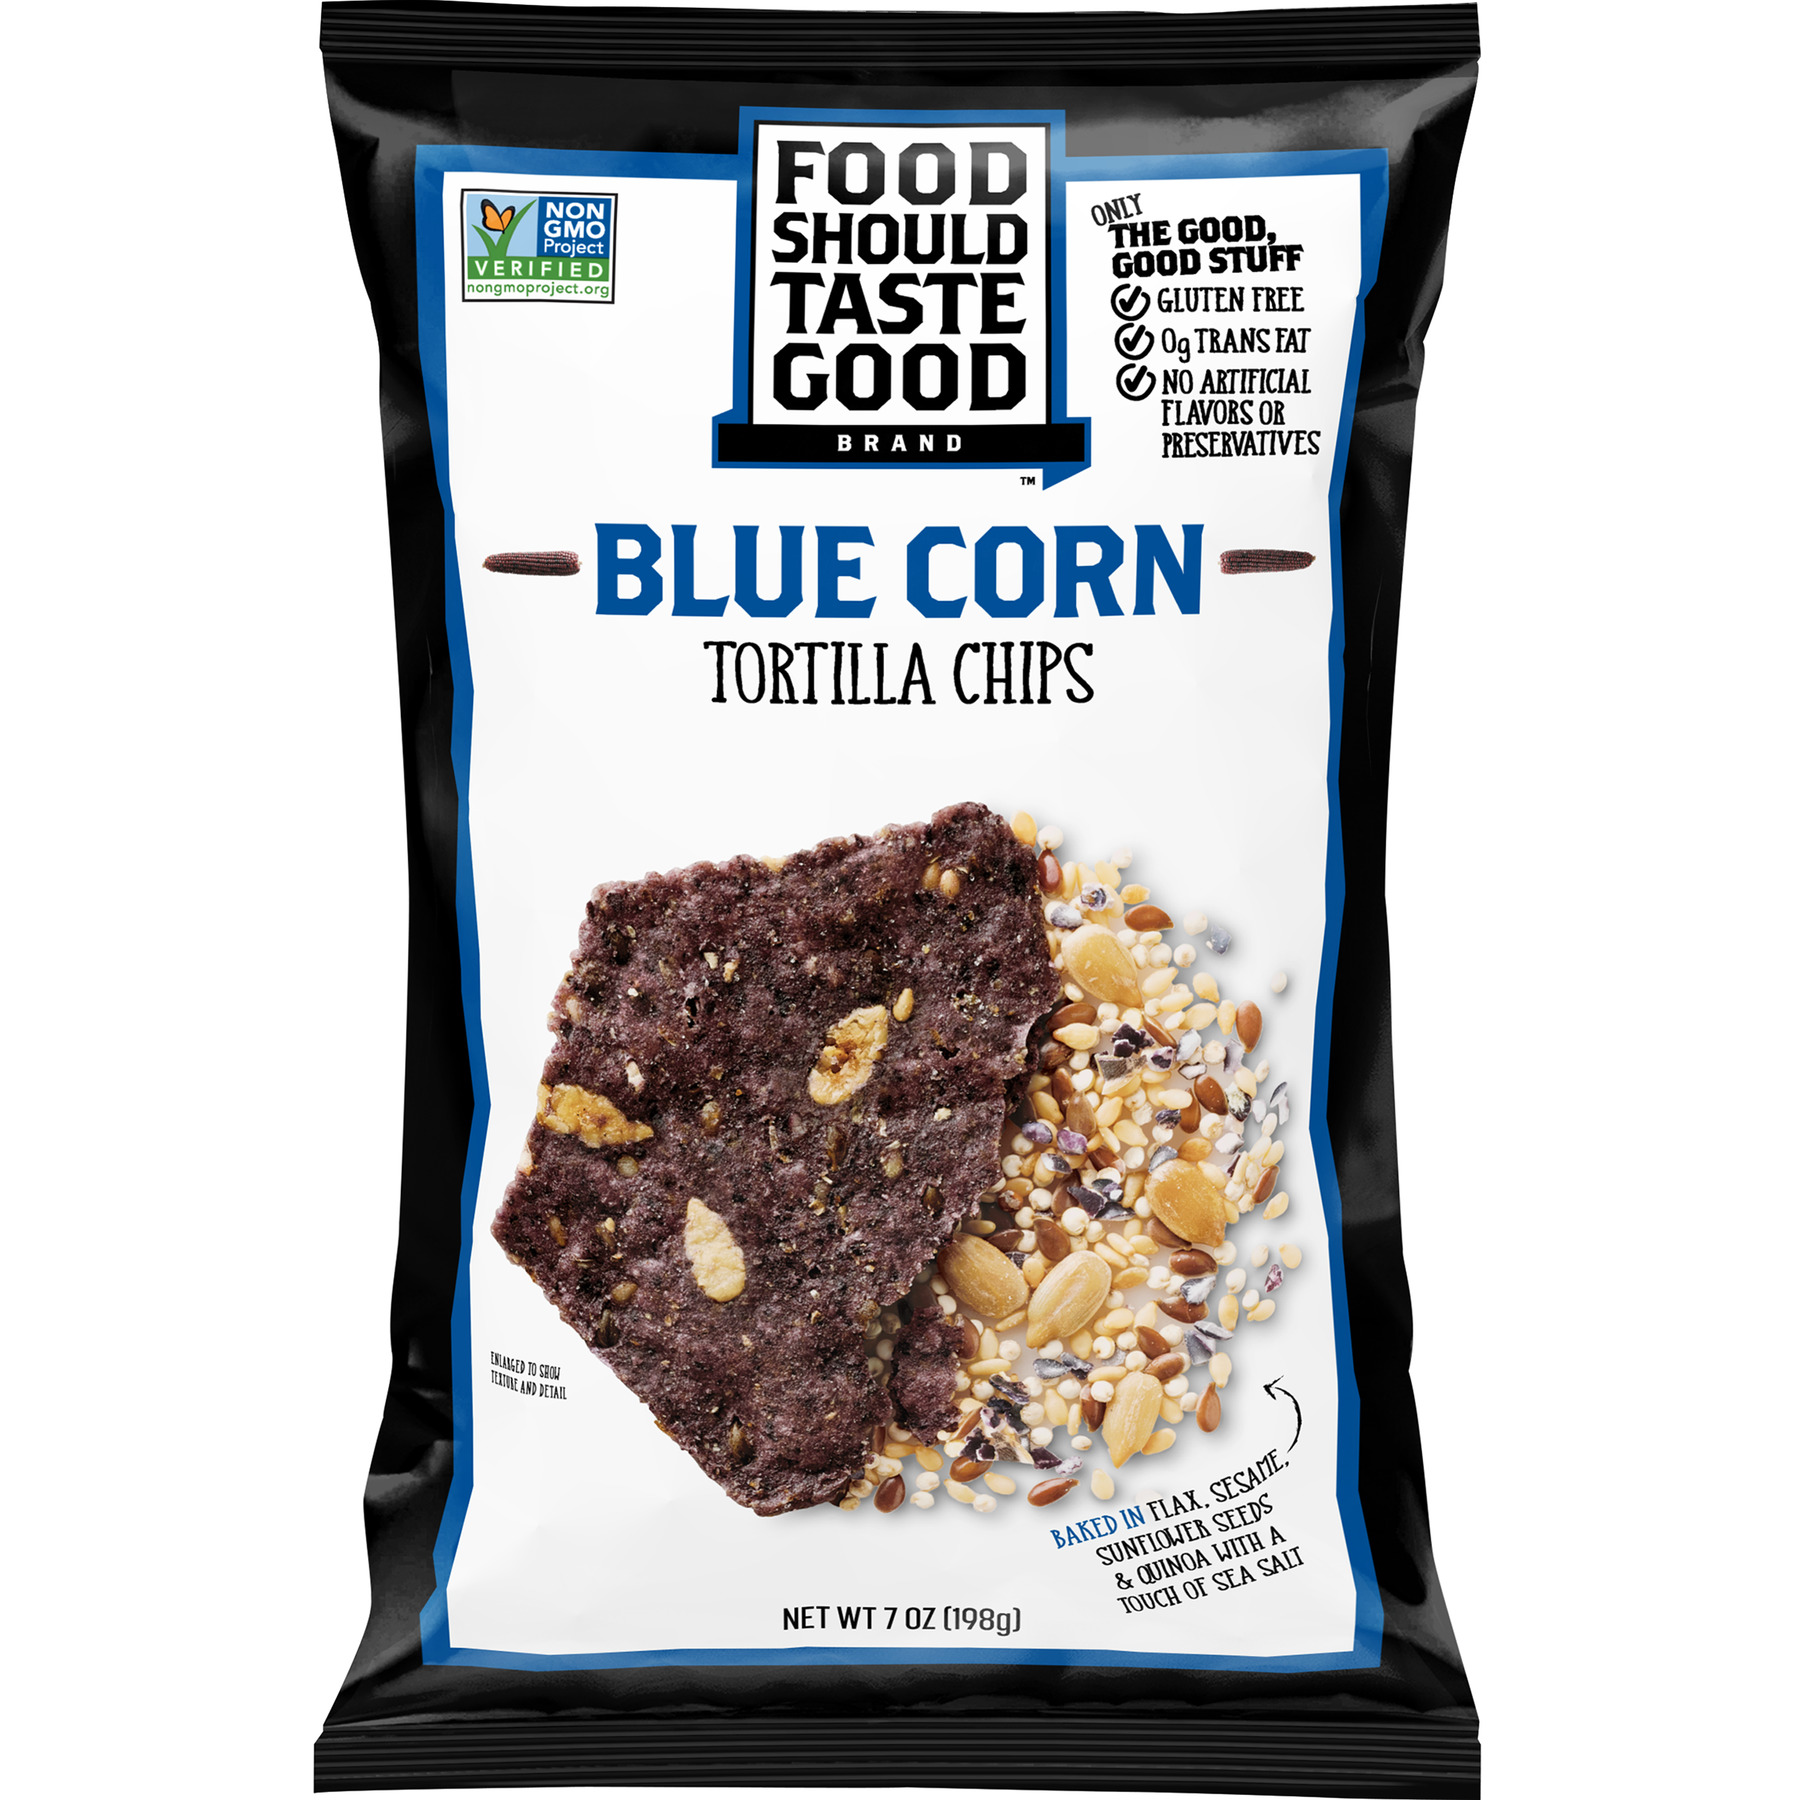 Food Should Taste Good Blue Corn Tortilla Chips, 7 oz